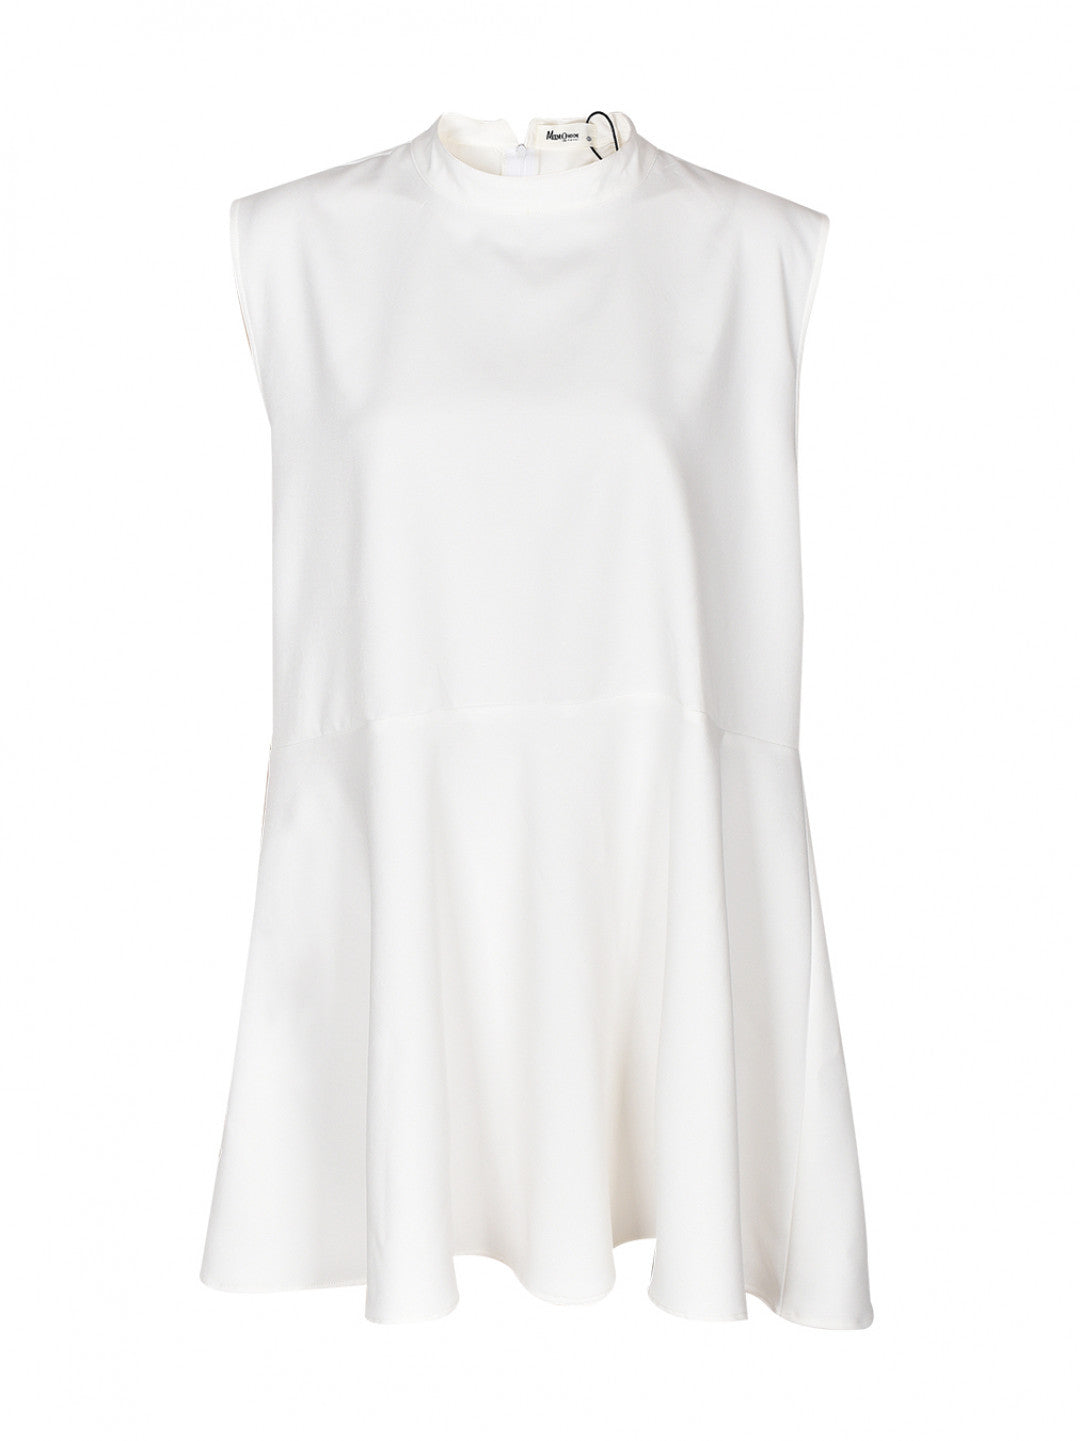 Savior Sleeveless Blouse